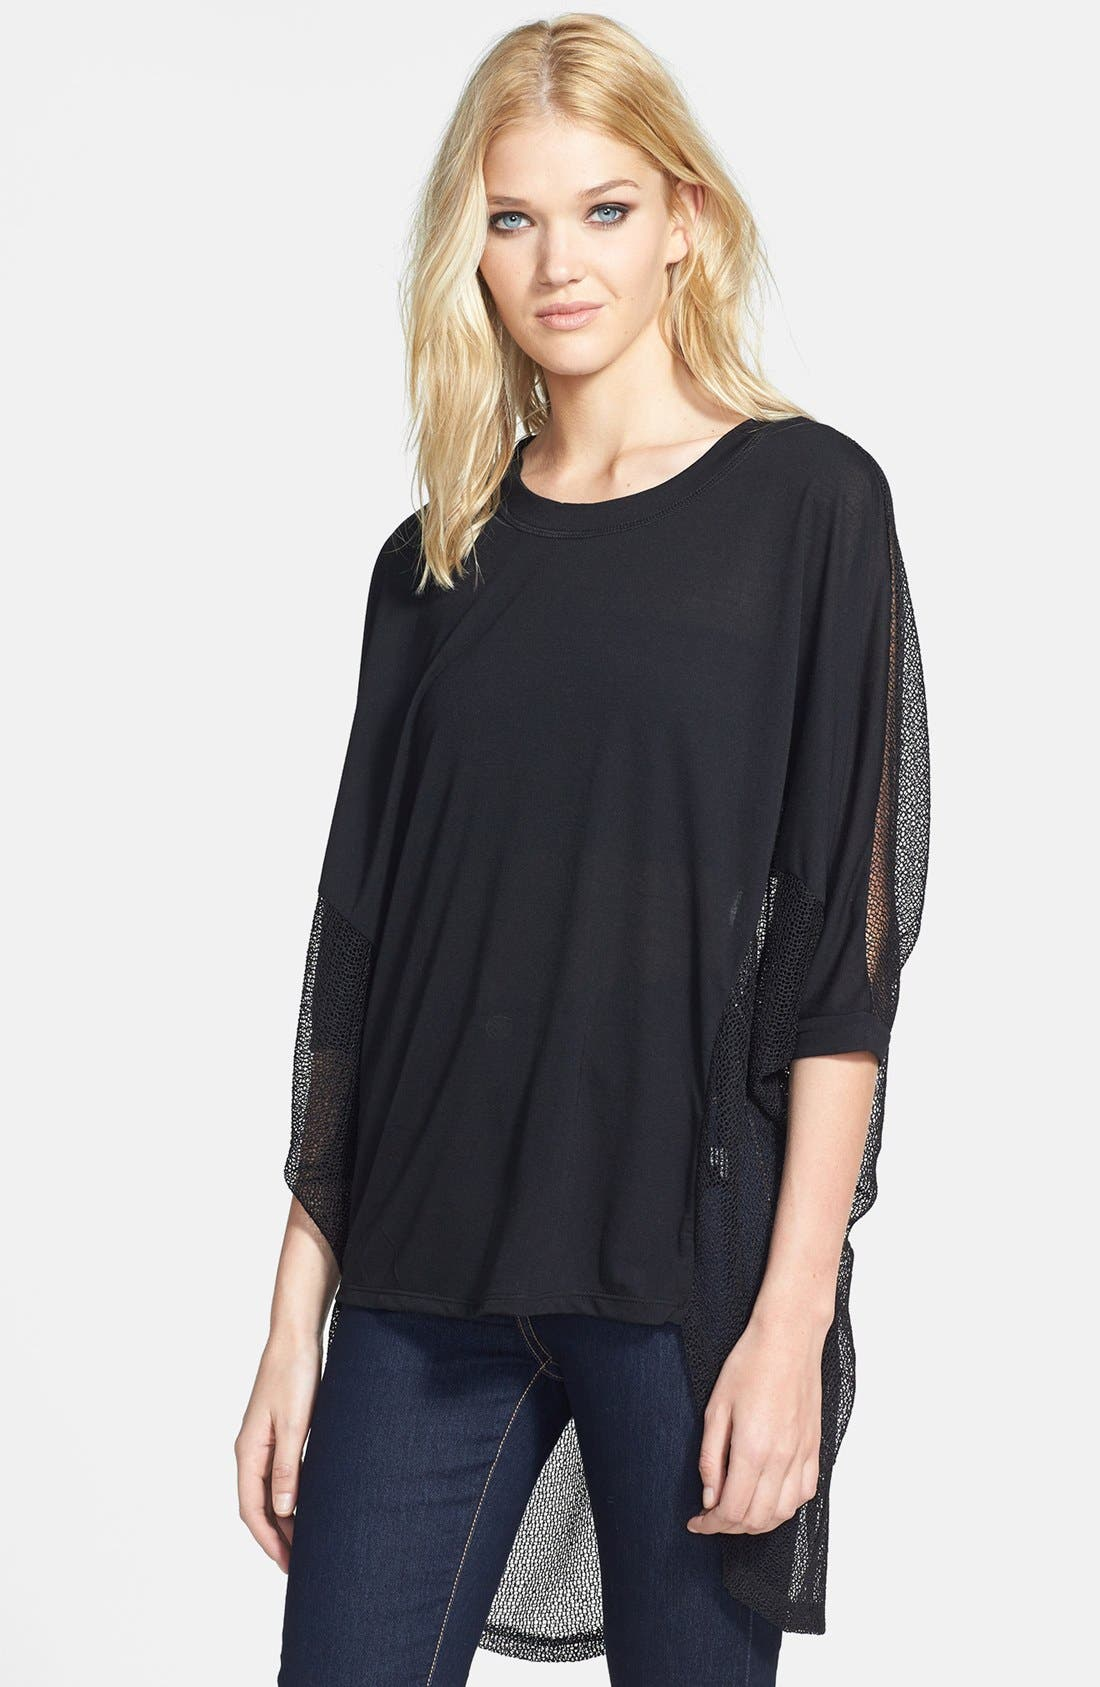 Alternate Image 1 Selected - Lucca Couture High/Low Sheer Mesh Top